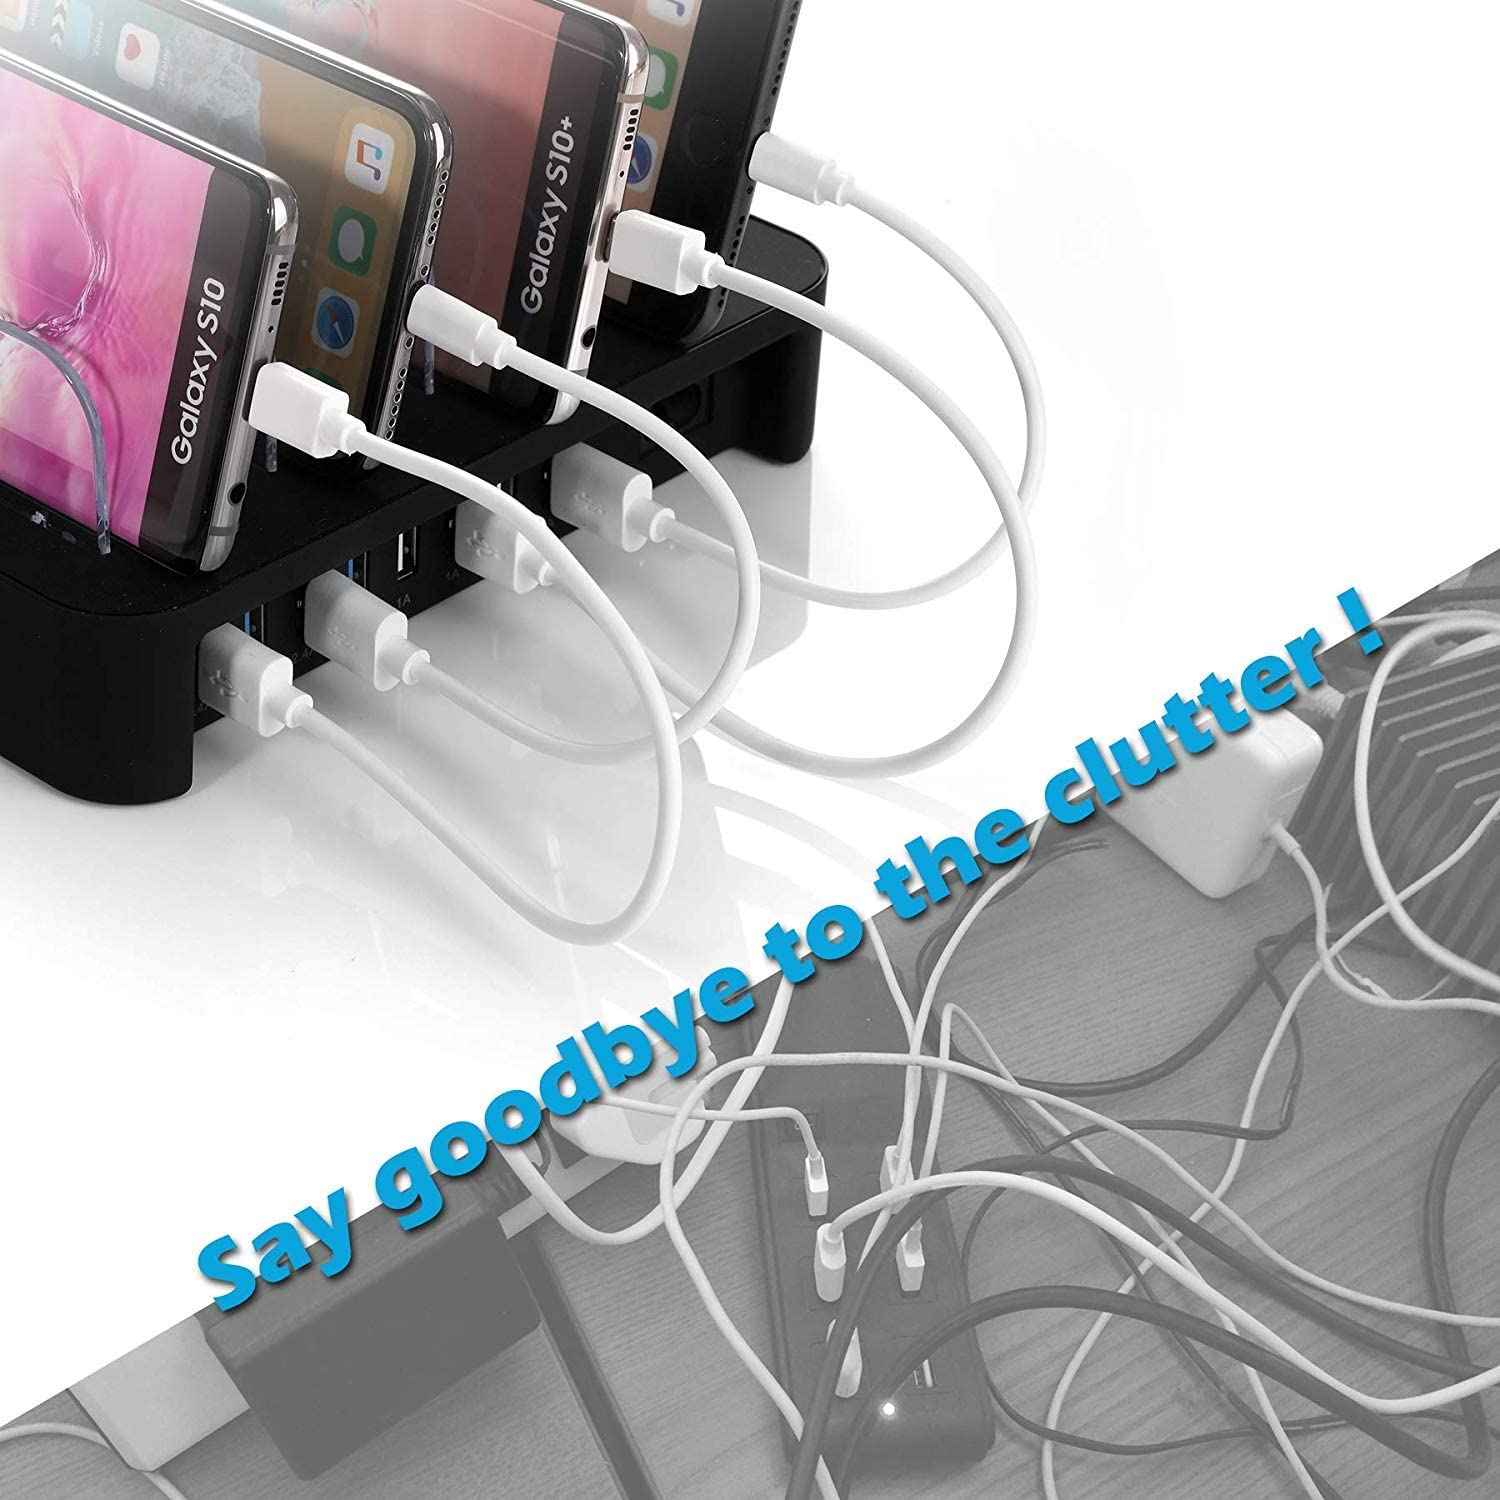 AirPods Includes 5 Cables BUT NO Power Supply Charger Pezin /& Hulin Bamboo Charging Stations for Multiple Devices Upgrade Desk Docking Station Organizer for Cell Phones iWatch Stand Tablet